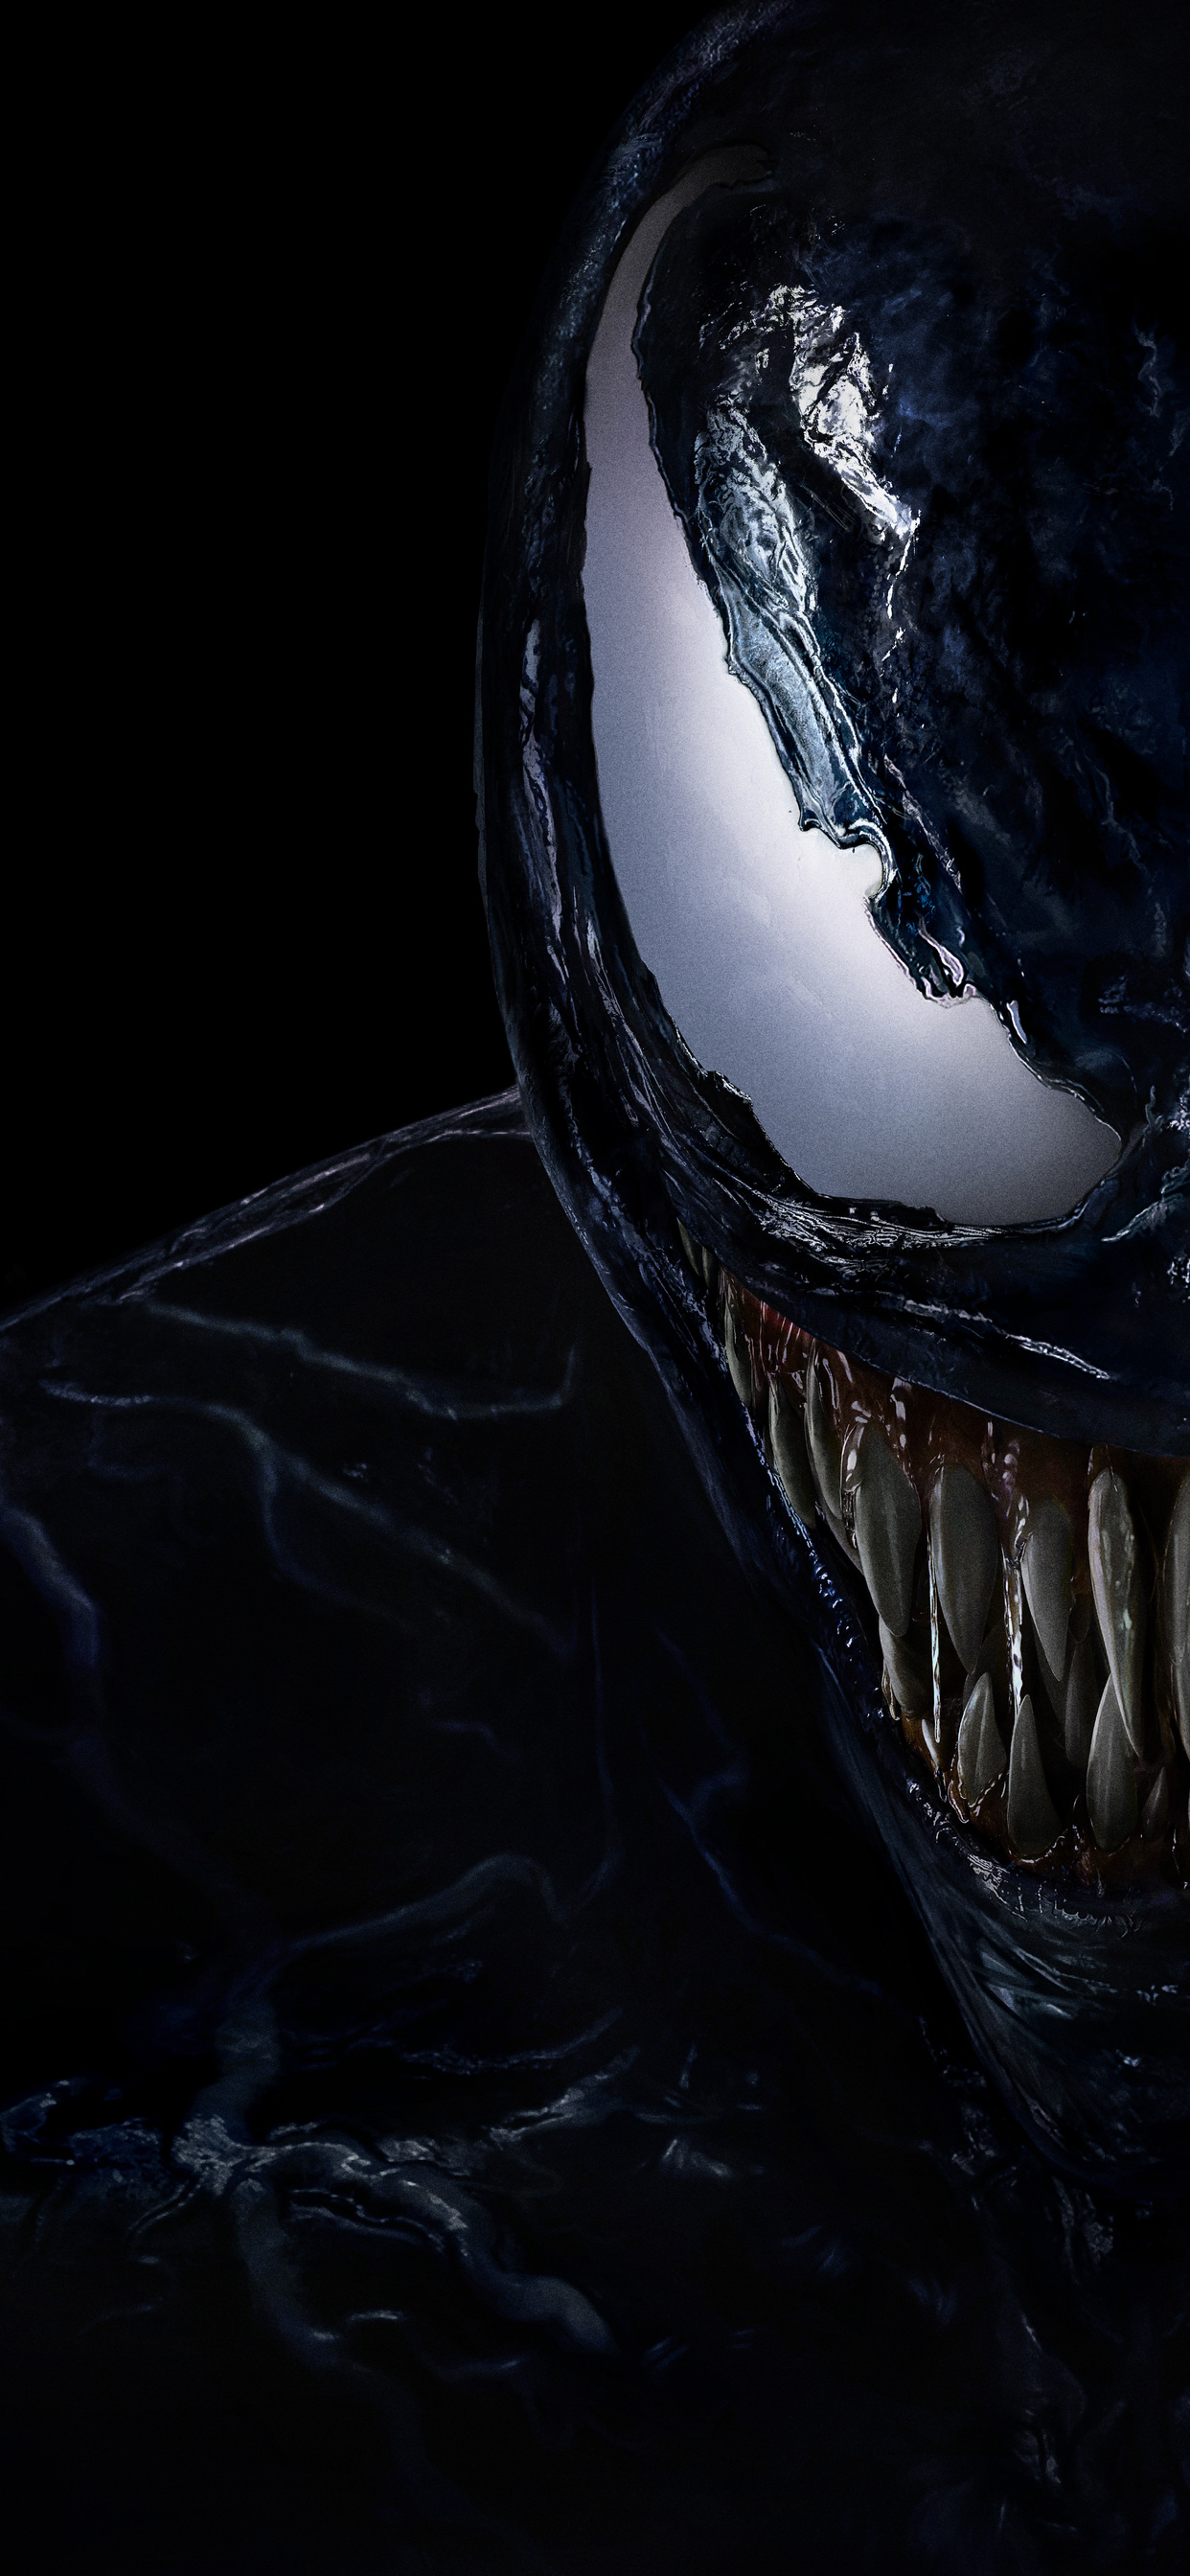 1242x2688 Venom Movie Official Poster 8k Iphone Xs Max Hd 4k Wallpapers Images Backgrounds Photos And Pictures